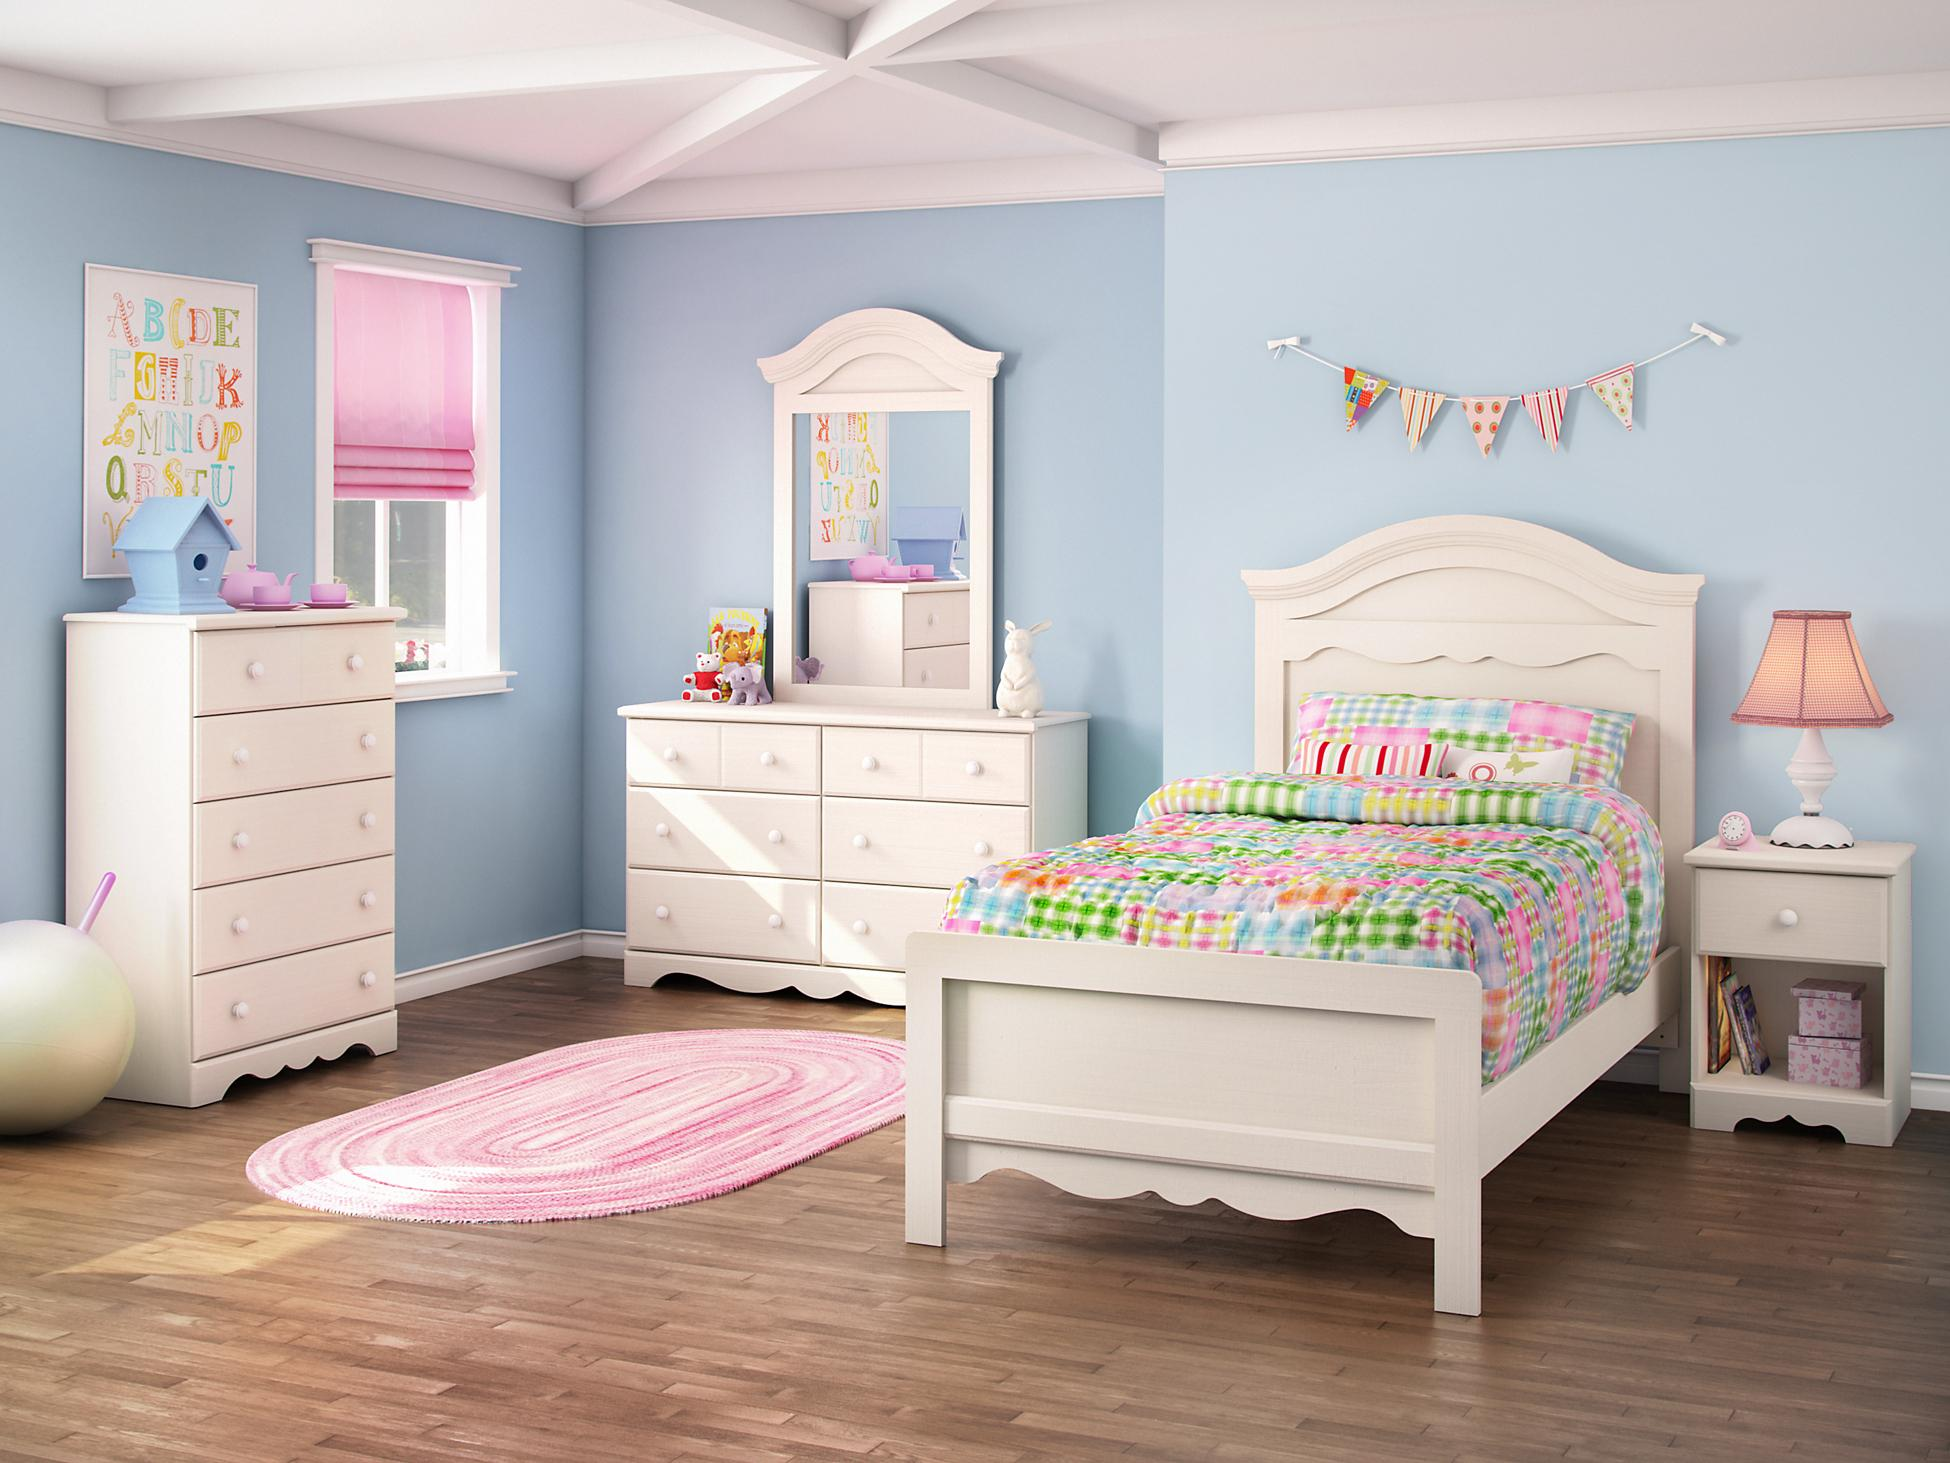 New ... Childrens Bedroom Furniture Childrens Furniture Childrens Bedroom ... white childrens bedroom furniture